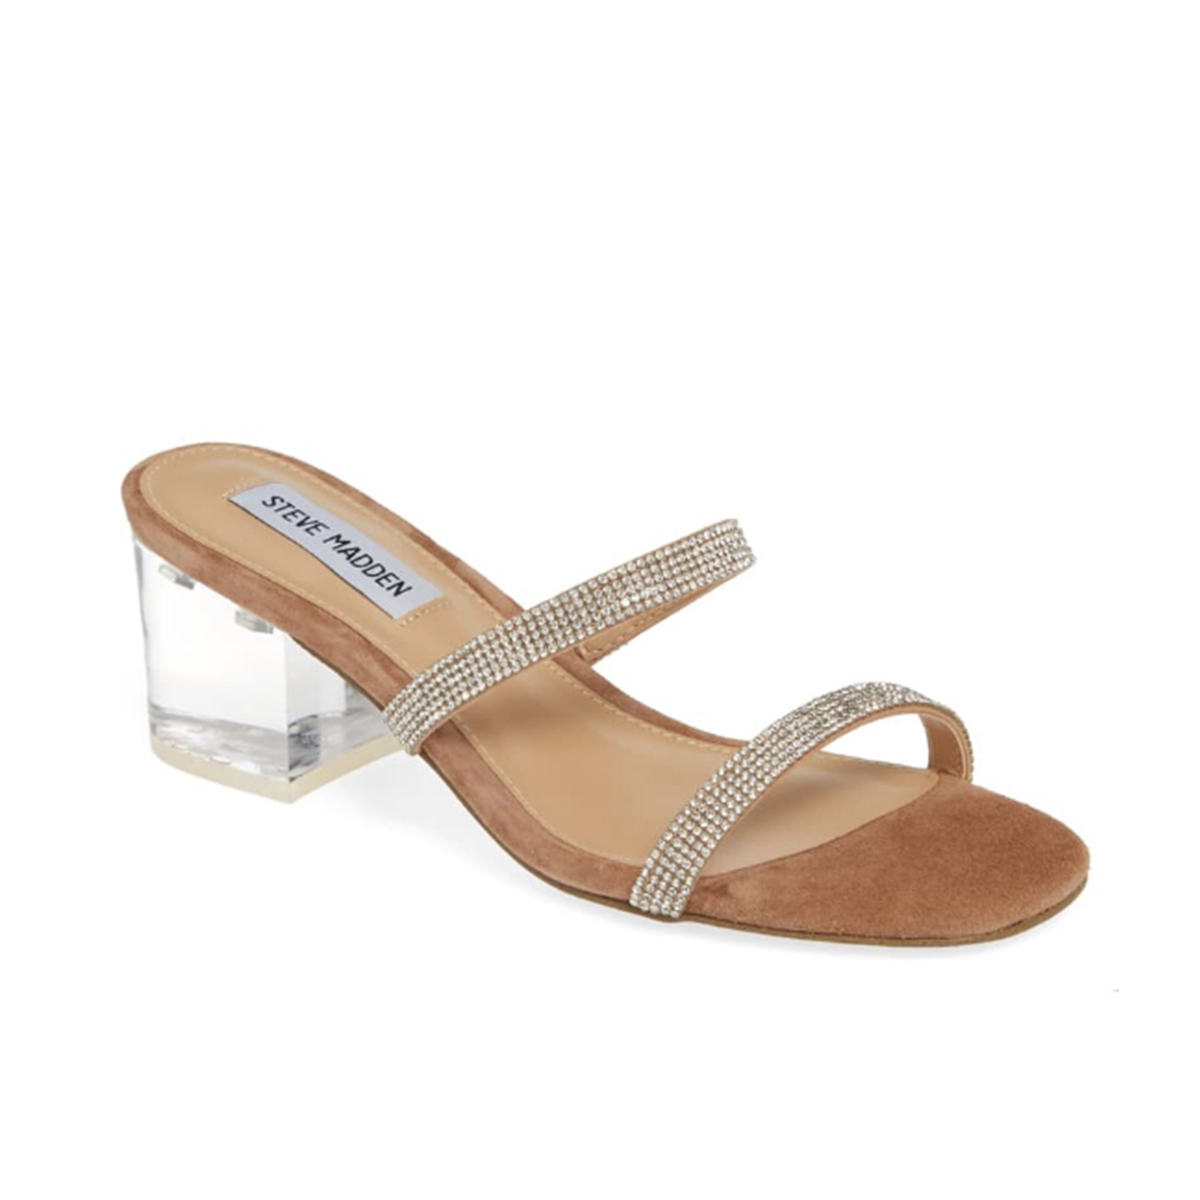 15 Wedding Sandals You'll Want to Wear for Your Wedding AND Your Honeymoon - on the Bronte Bride Blog